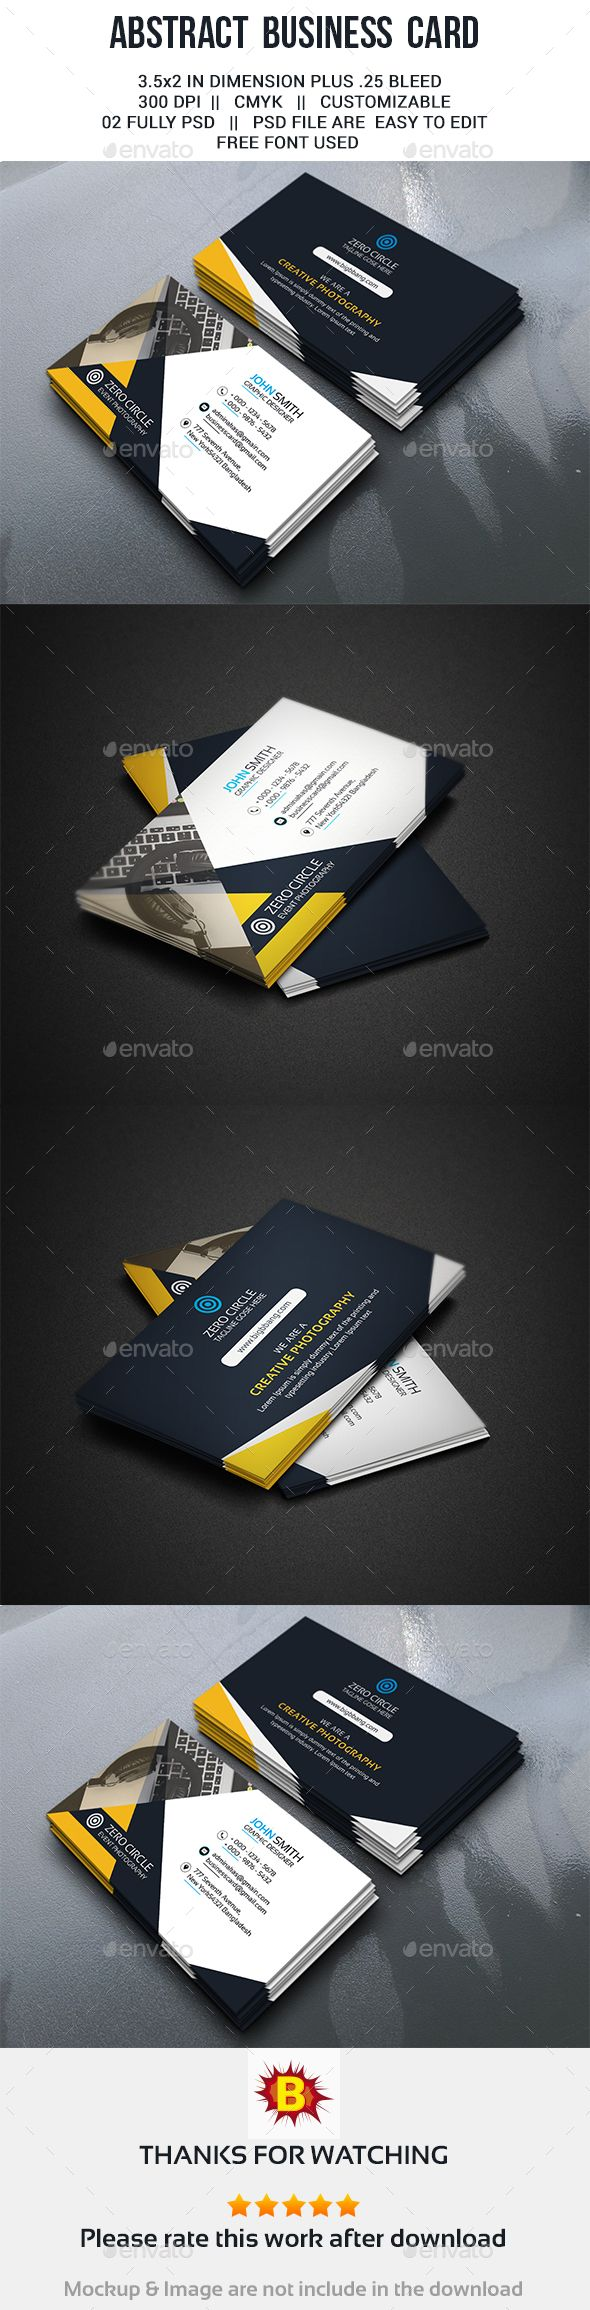 Abstract business card template psd design download http abstract business card template psd design download httpgraphicriveritemabstract business card13755901refksioks reheart Image collections